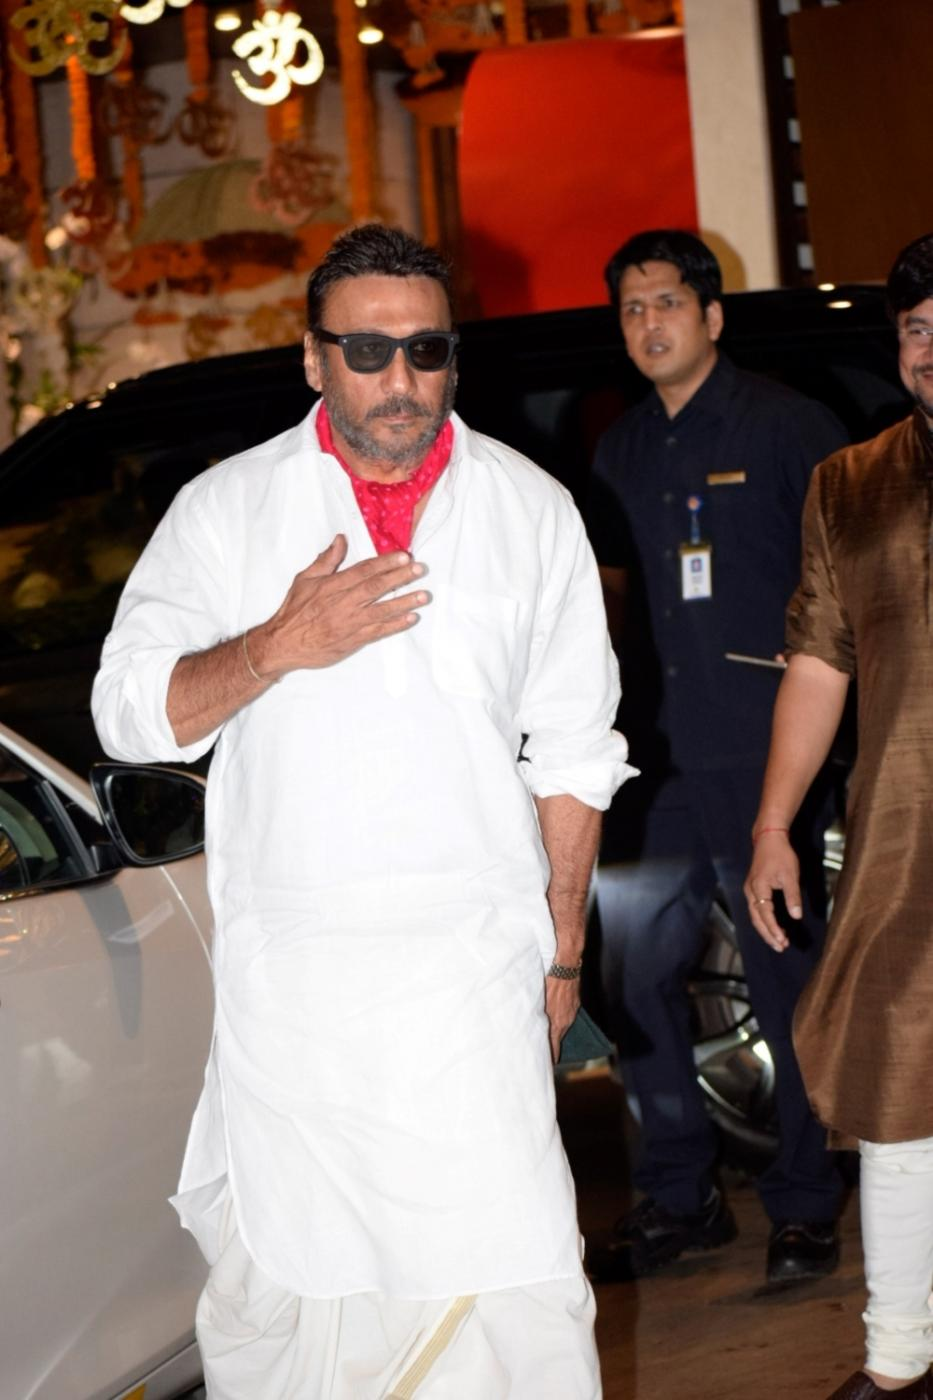 Mumbai: Actor Jackie Shroff arrives at Reliance Industries Chairman and MD Mukesh Ambani's residence to celebrate Ganesh Chaturthi in Mumbai on Sept 13, 2018. (Photo: IANS) by .